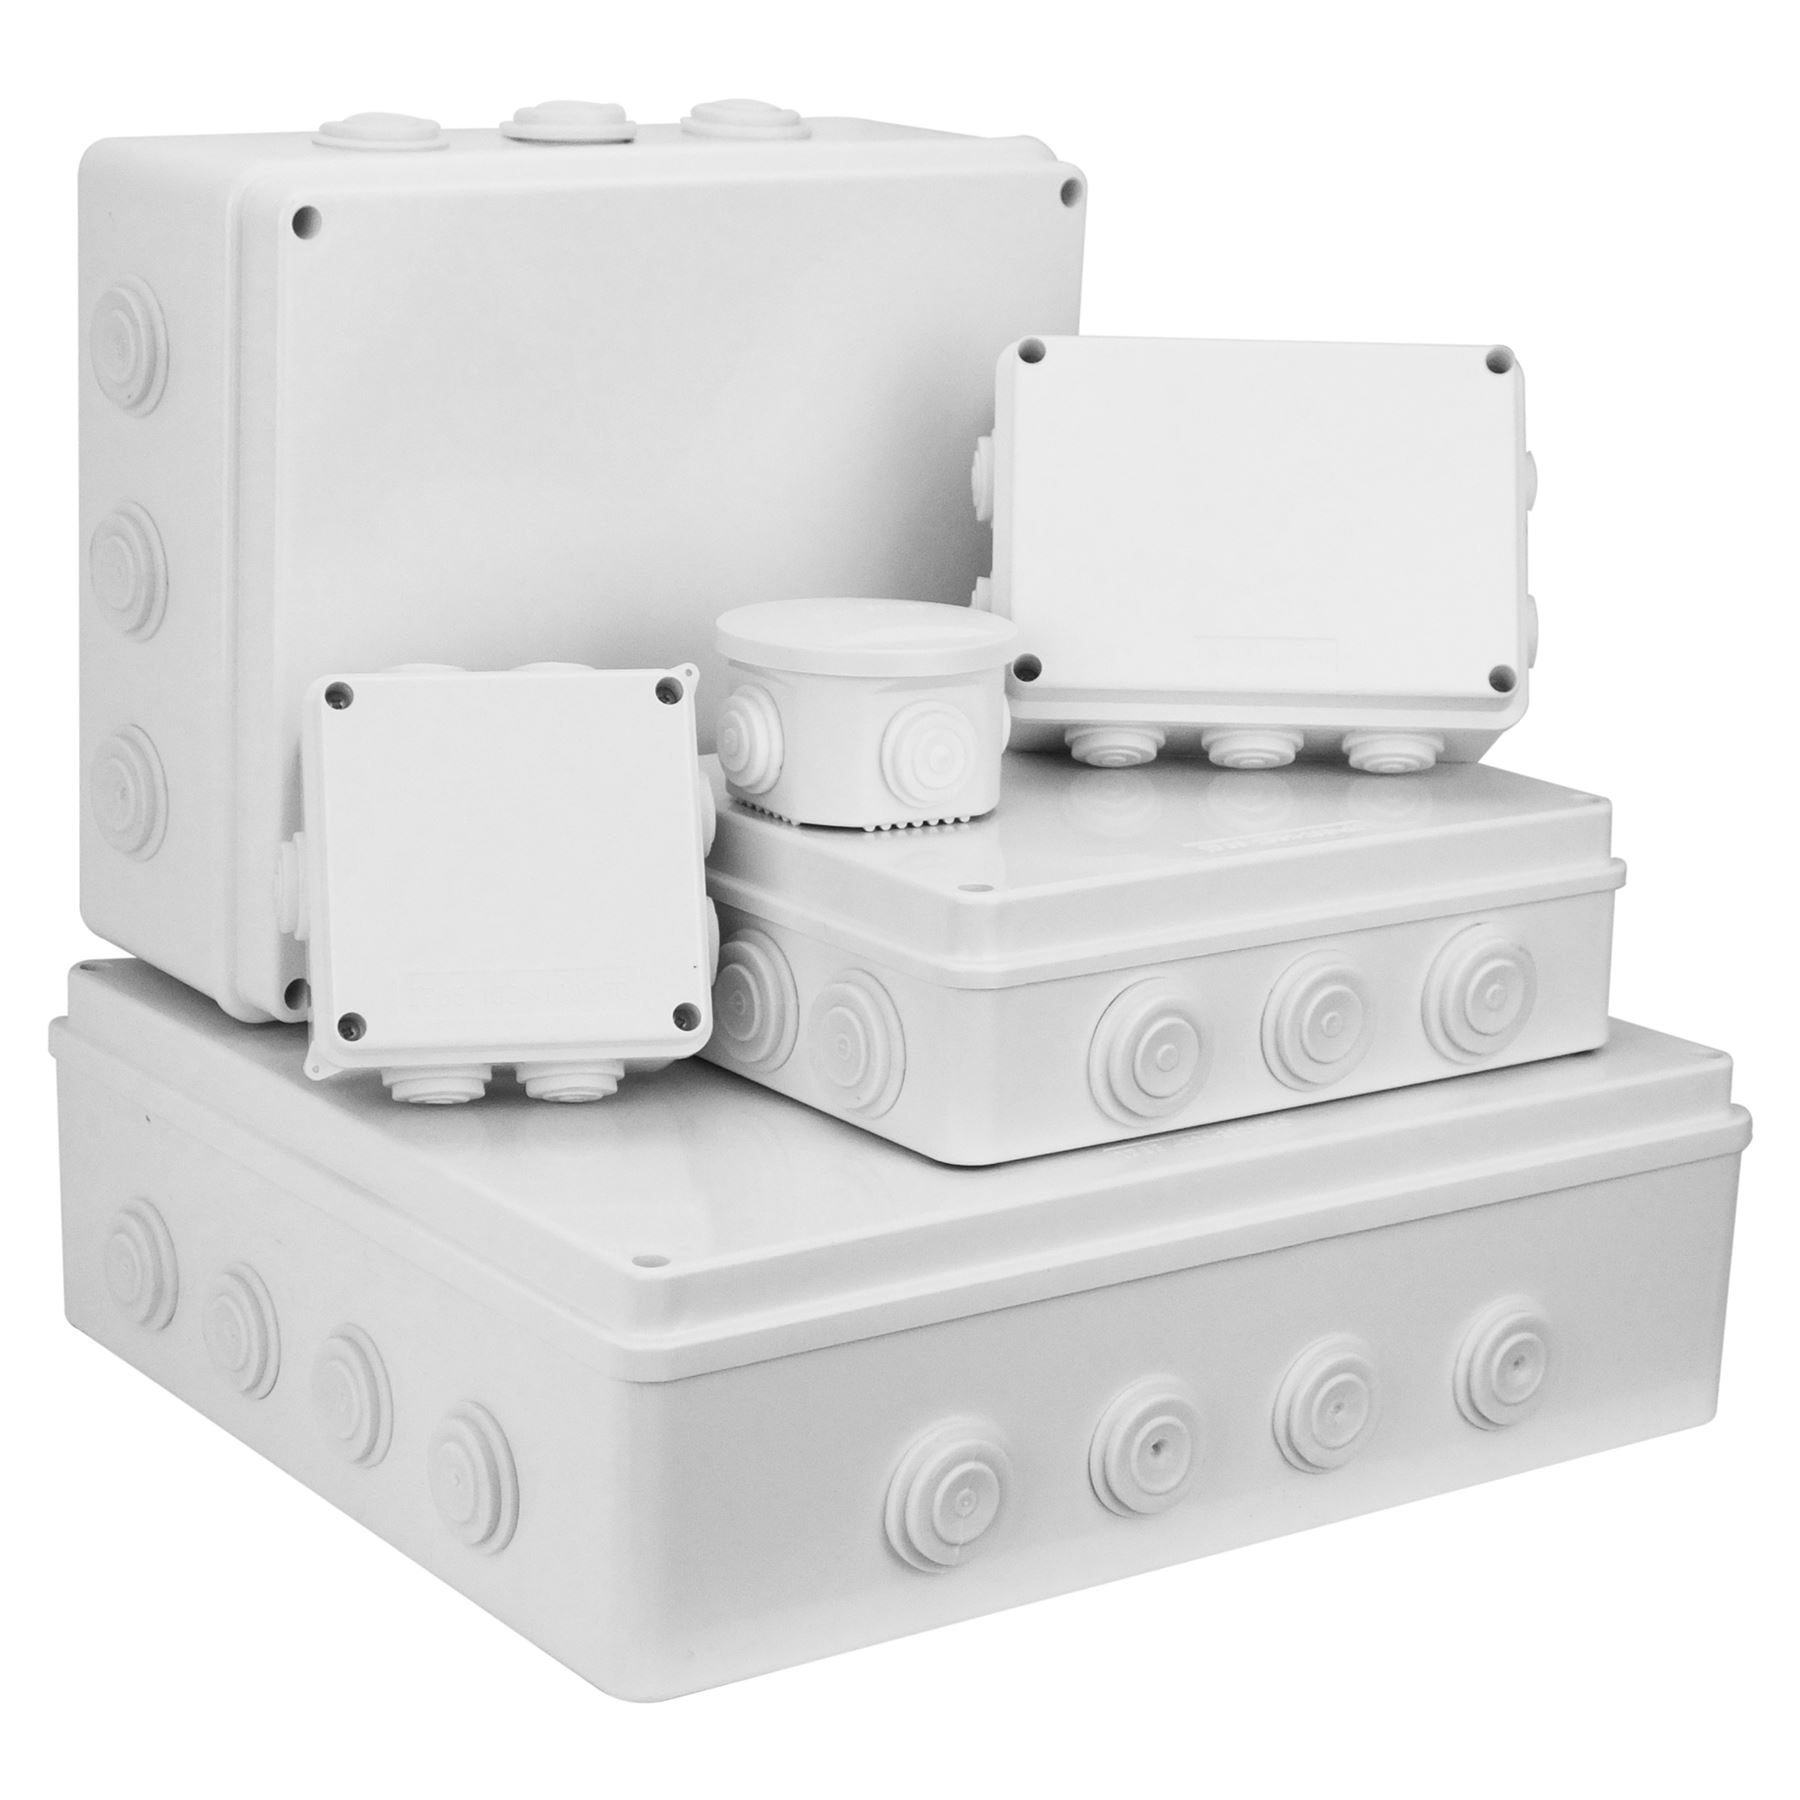 Buy Ip65 Junction Box In Home Electrical Fittings Ebay At Light Fixture Proceeds To First 3way Switch A 4 Maxx Digital Plastic Weatherproof Ip44 Terminal Indoor Outdoor